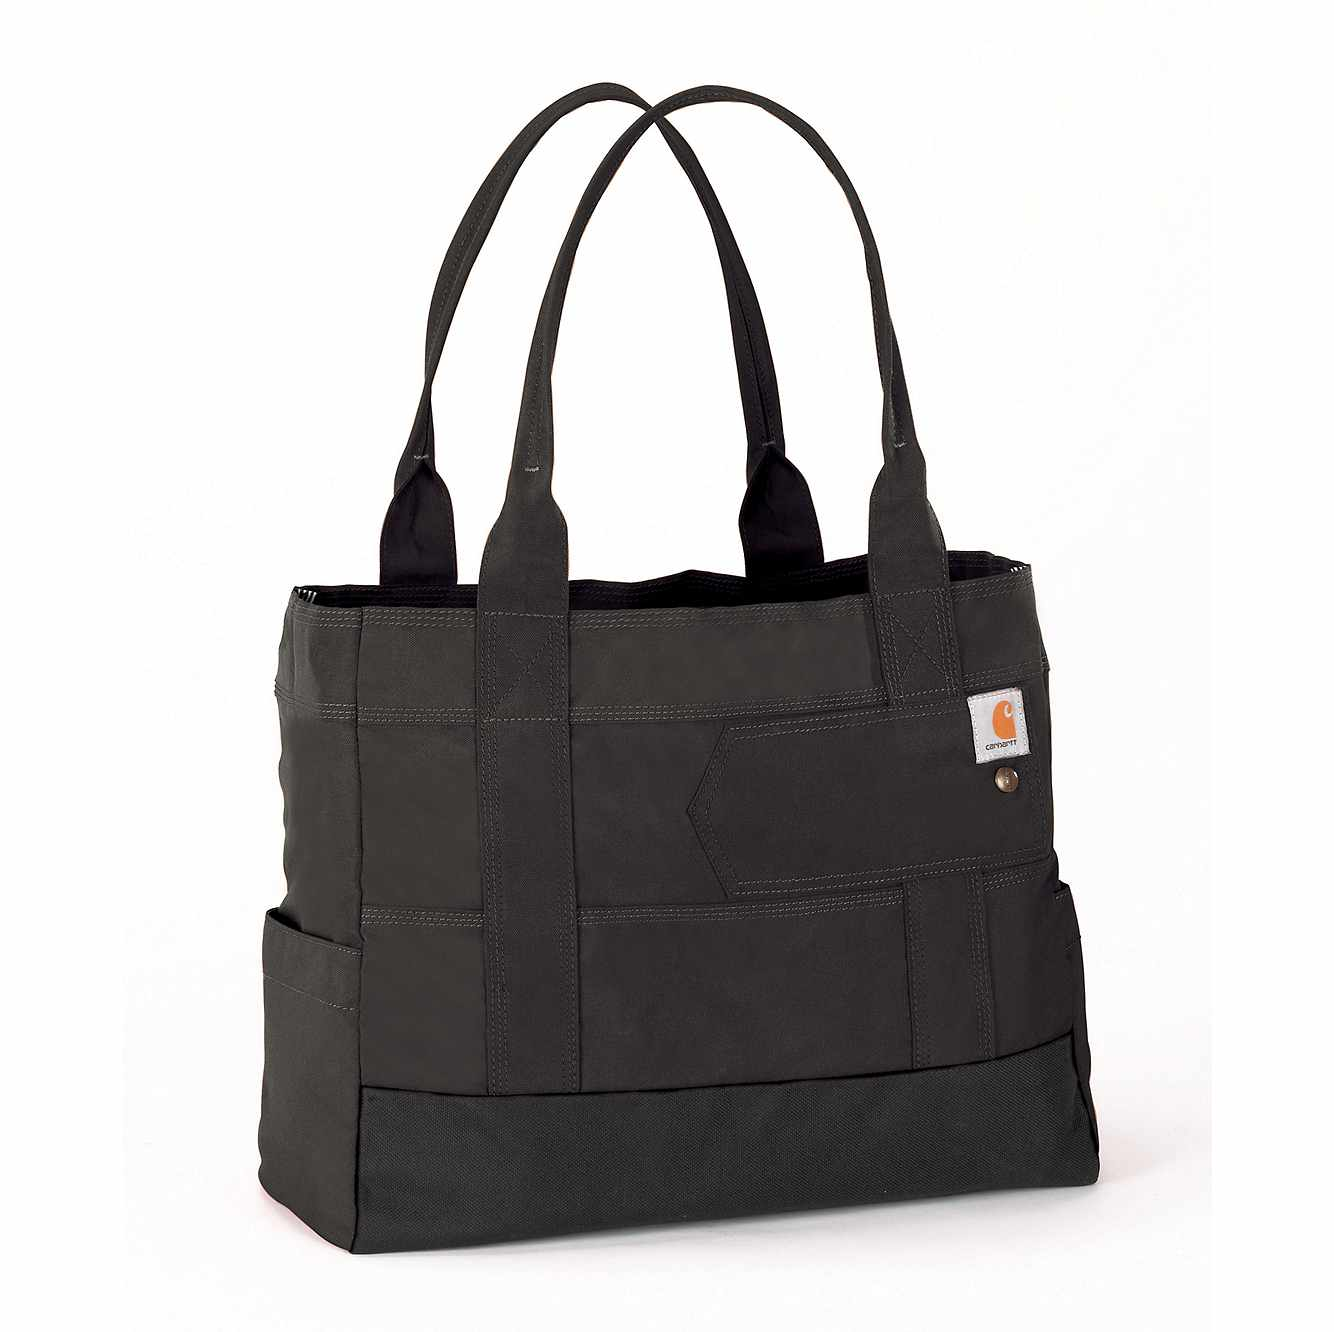 Picture of Legacy East West Tote in Black